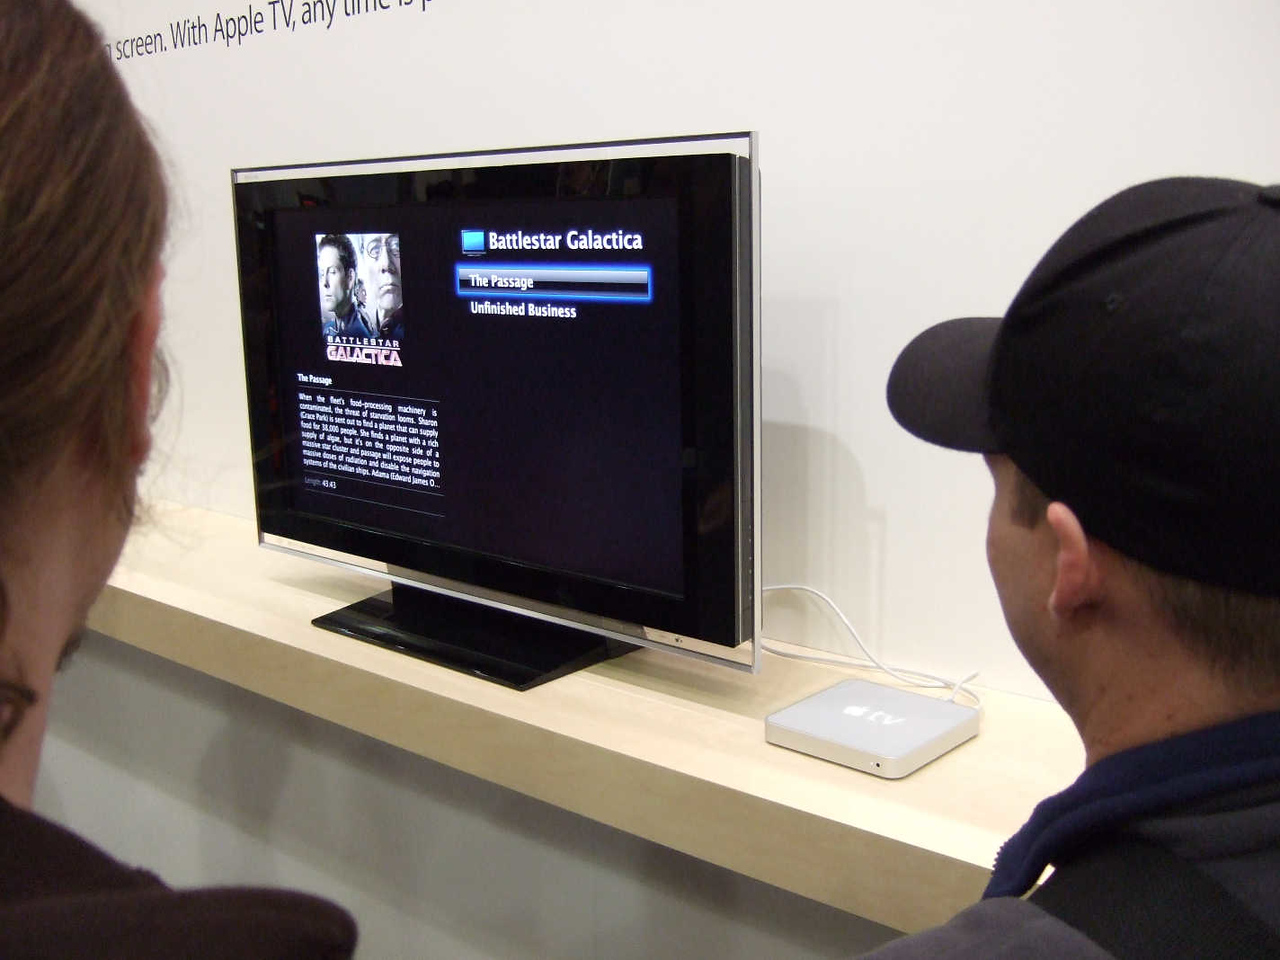 Another view of cinema as seen on Apple's display.